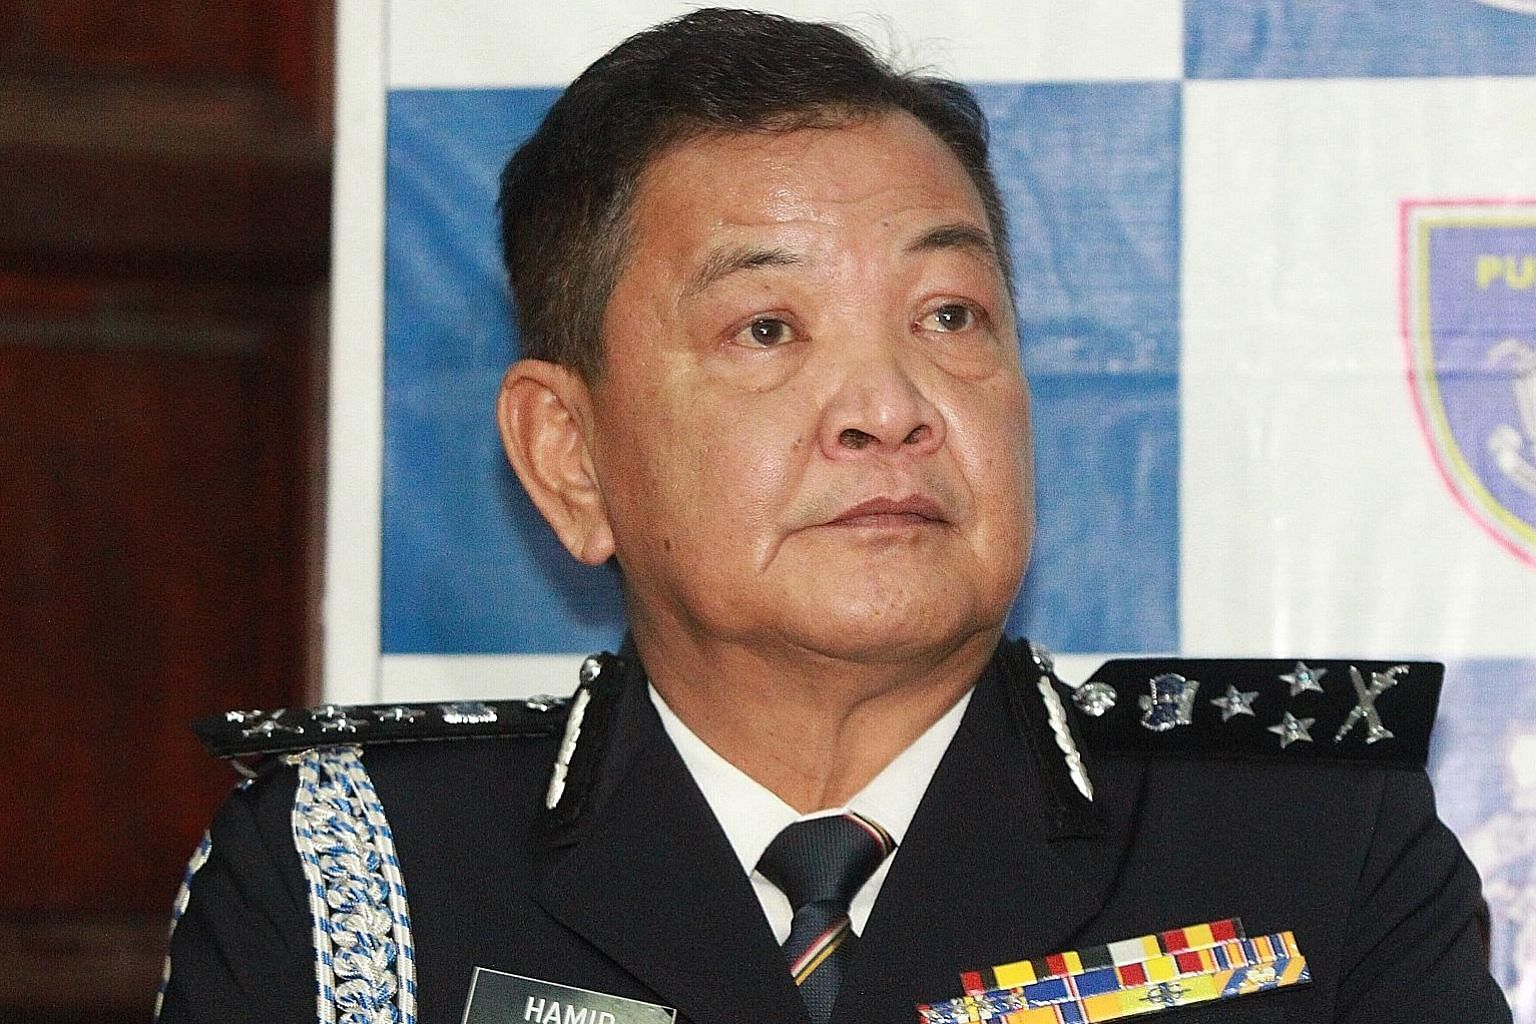 Police chief Abdul Hamid Bador says there is evidence of a conspiracy in the production and circulation of the video.